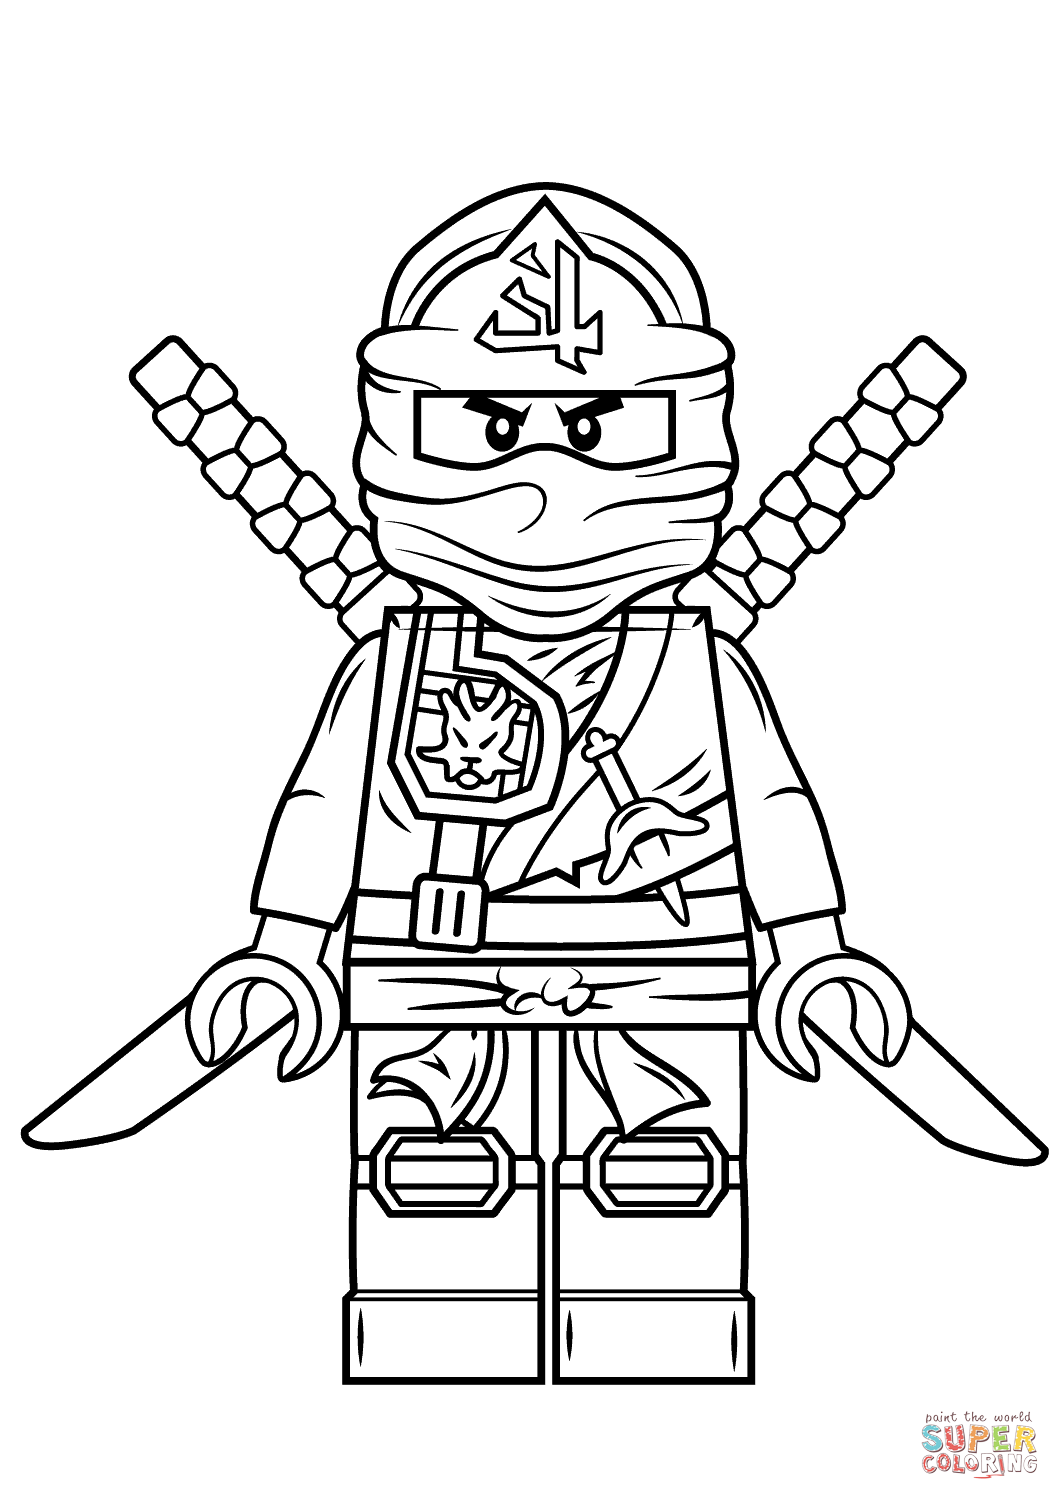 Lego Ninjago Green Ninja | Super Coloring | freemotion embroidery ...